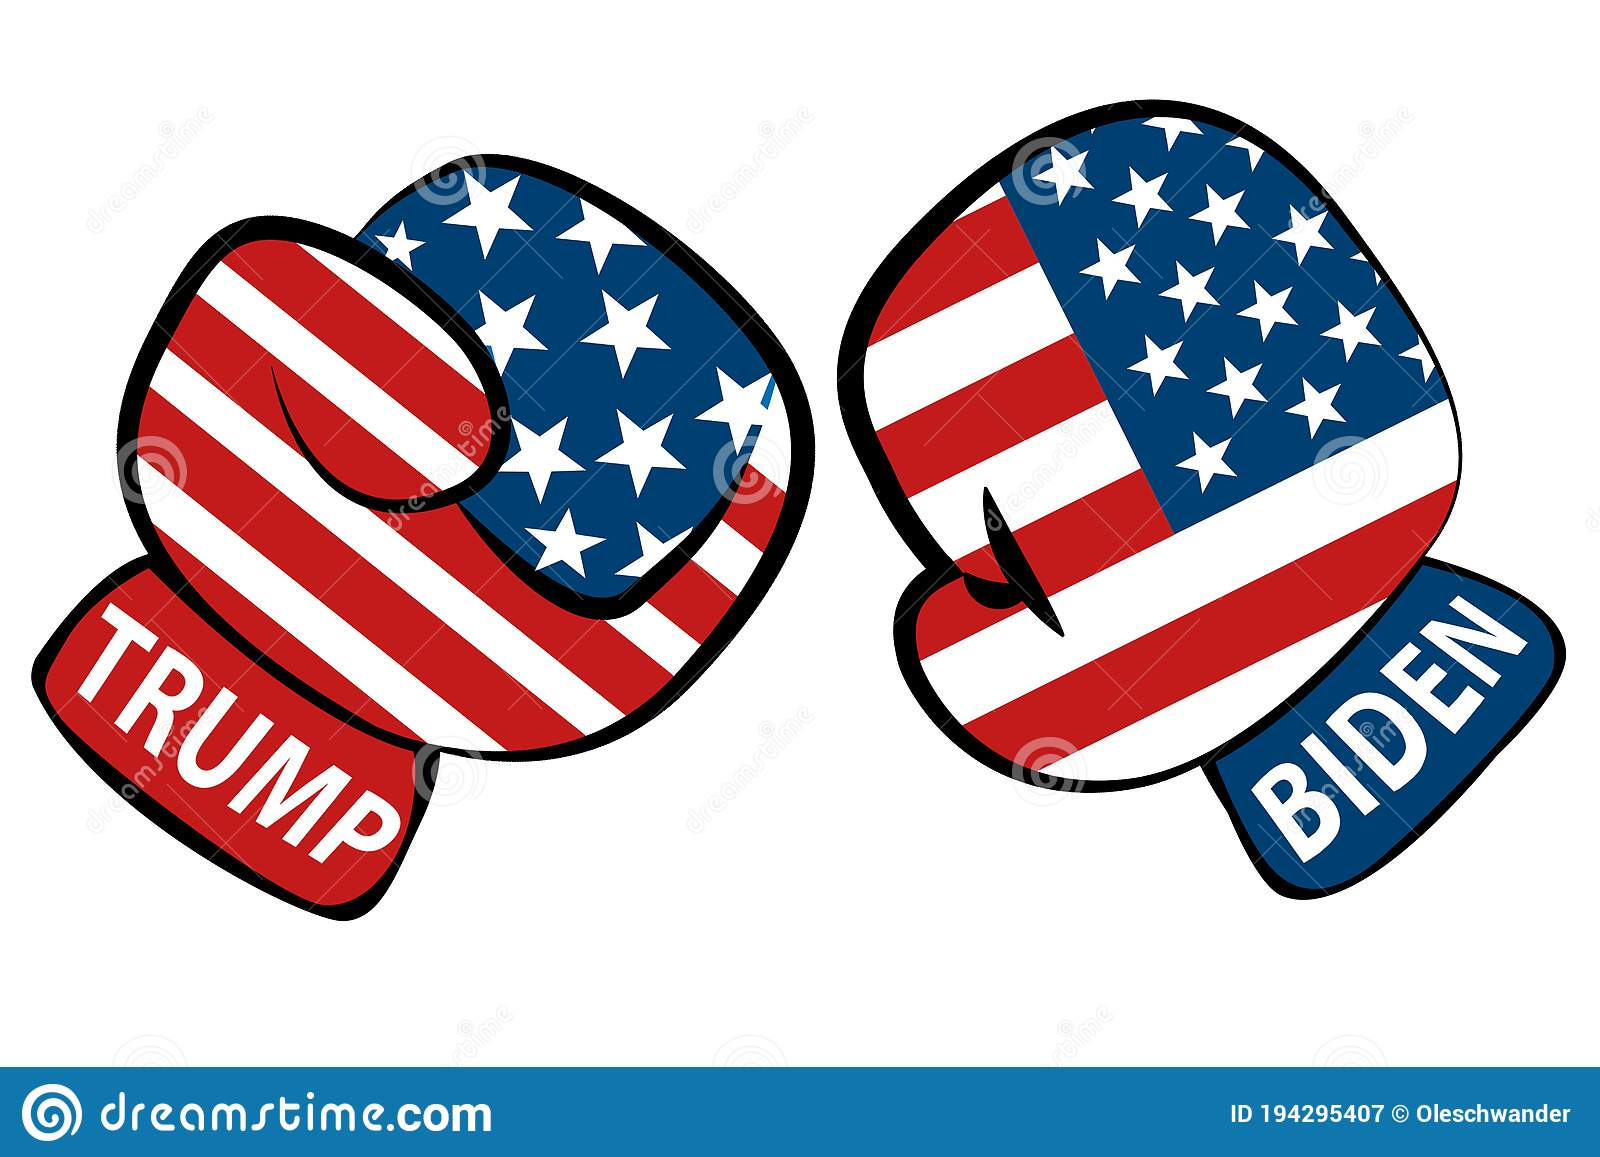 Biden And Trump Battle For Becoming President Of Usa United States Of America Illustrated Like Two Boxing Gloves With The Names B Editorial Photography Illustration Of Business Flag 194295407